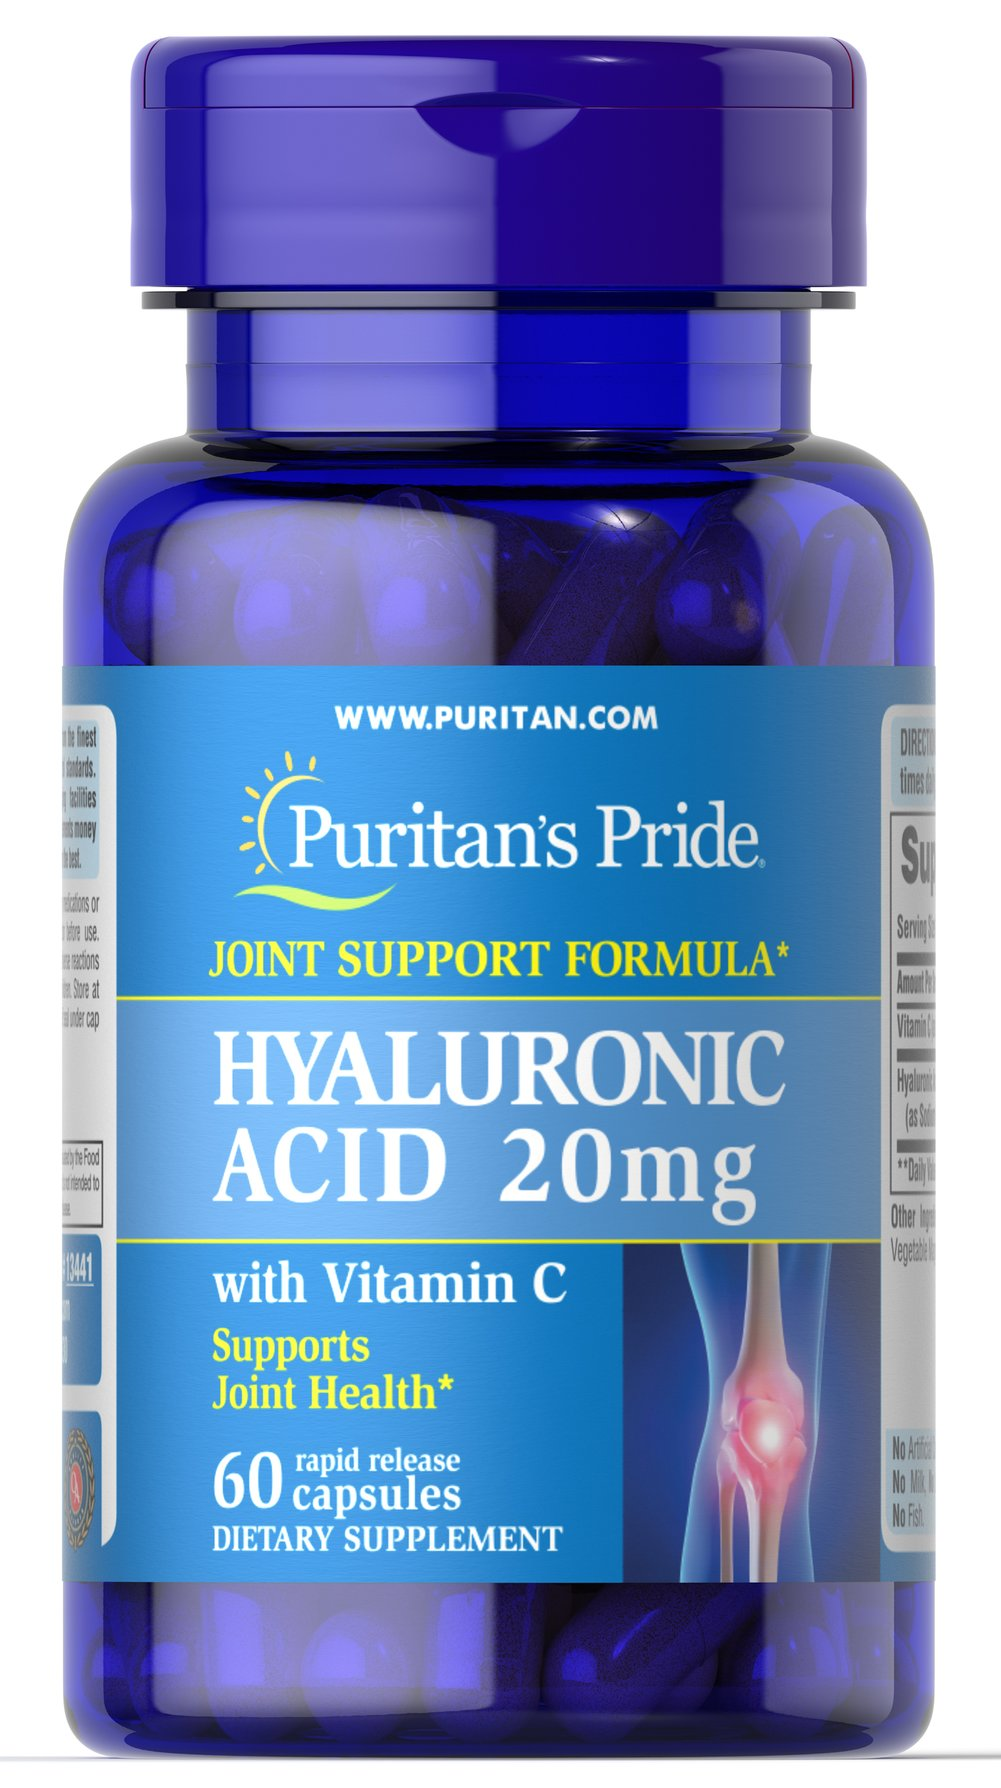 Hyaluronic Acid 20 mg <p>Hyaluronic Acid is a polysaccharide found in almost all adult connective tissue, including skin.** <br /></p> 60 Capsules 20 mg $14.99